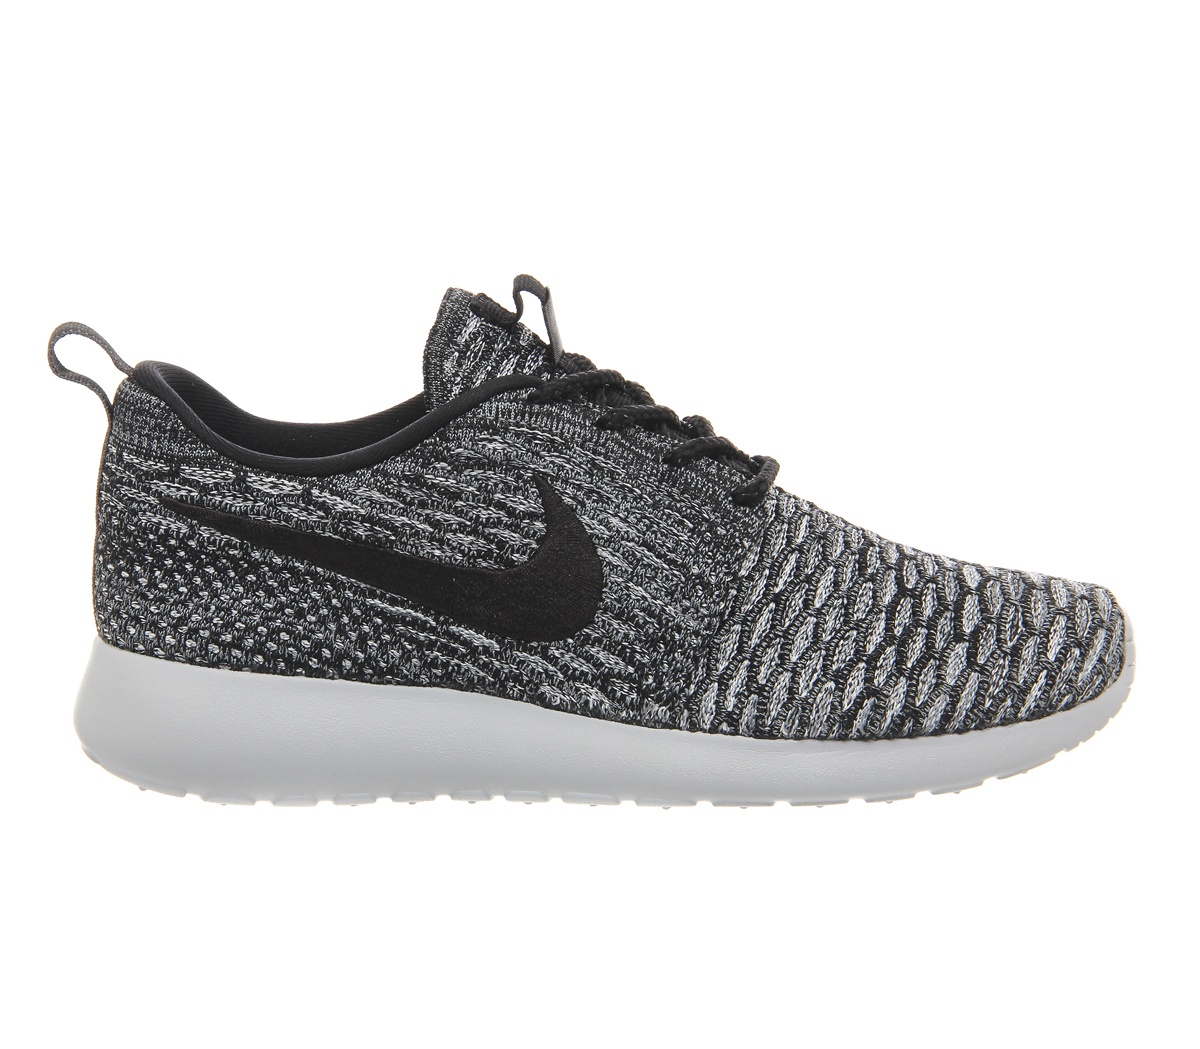 nike roshe run flyknit w in gray lyst. Black Bedroom Furniture Sets. Home Design Ideas